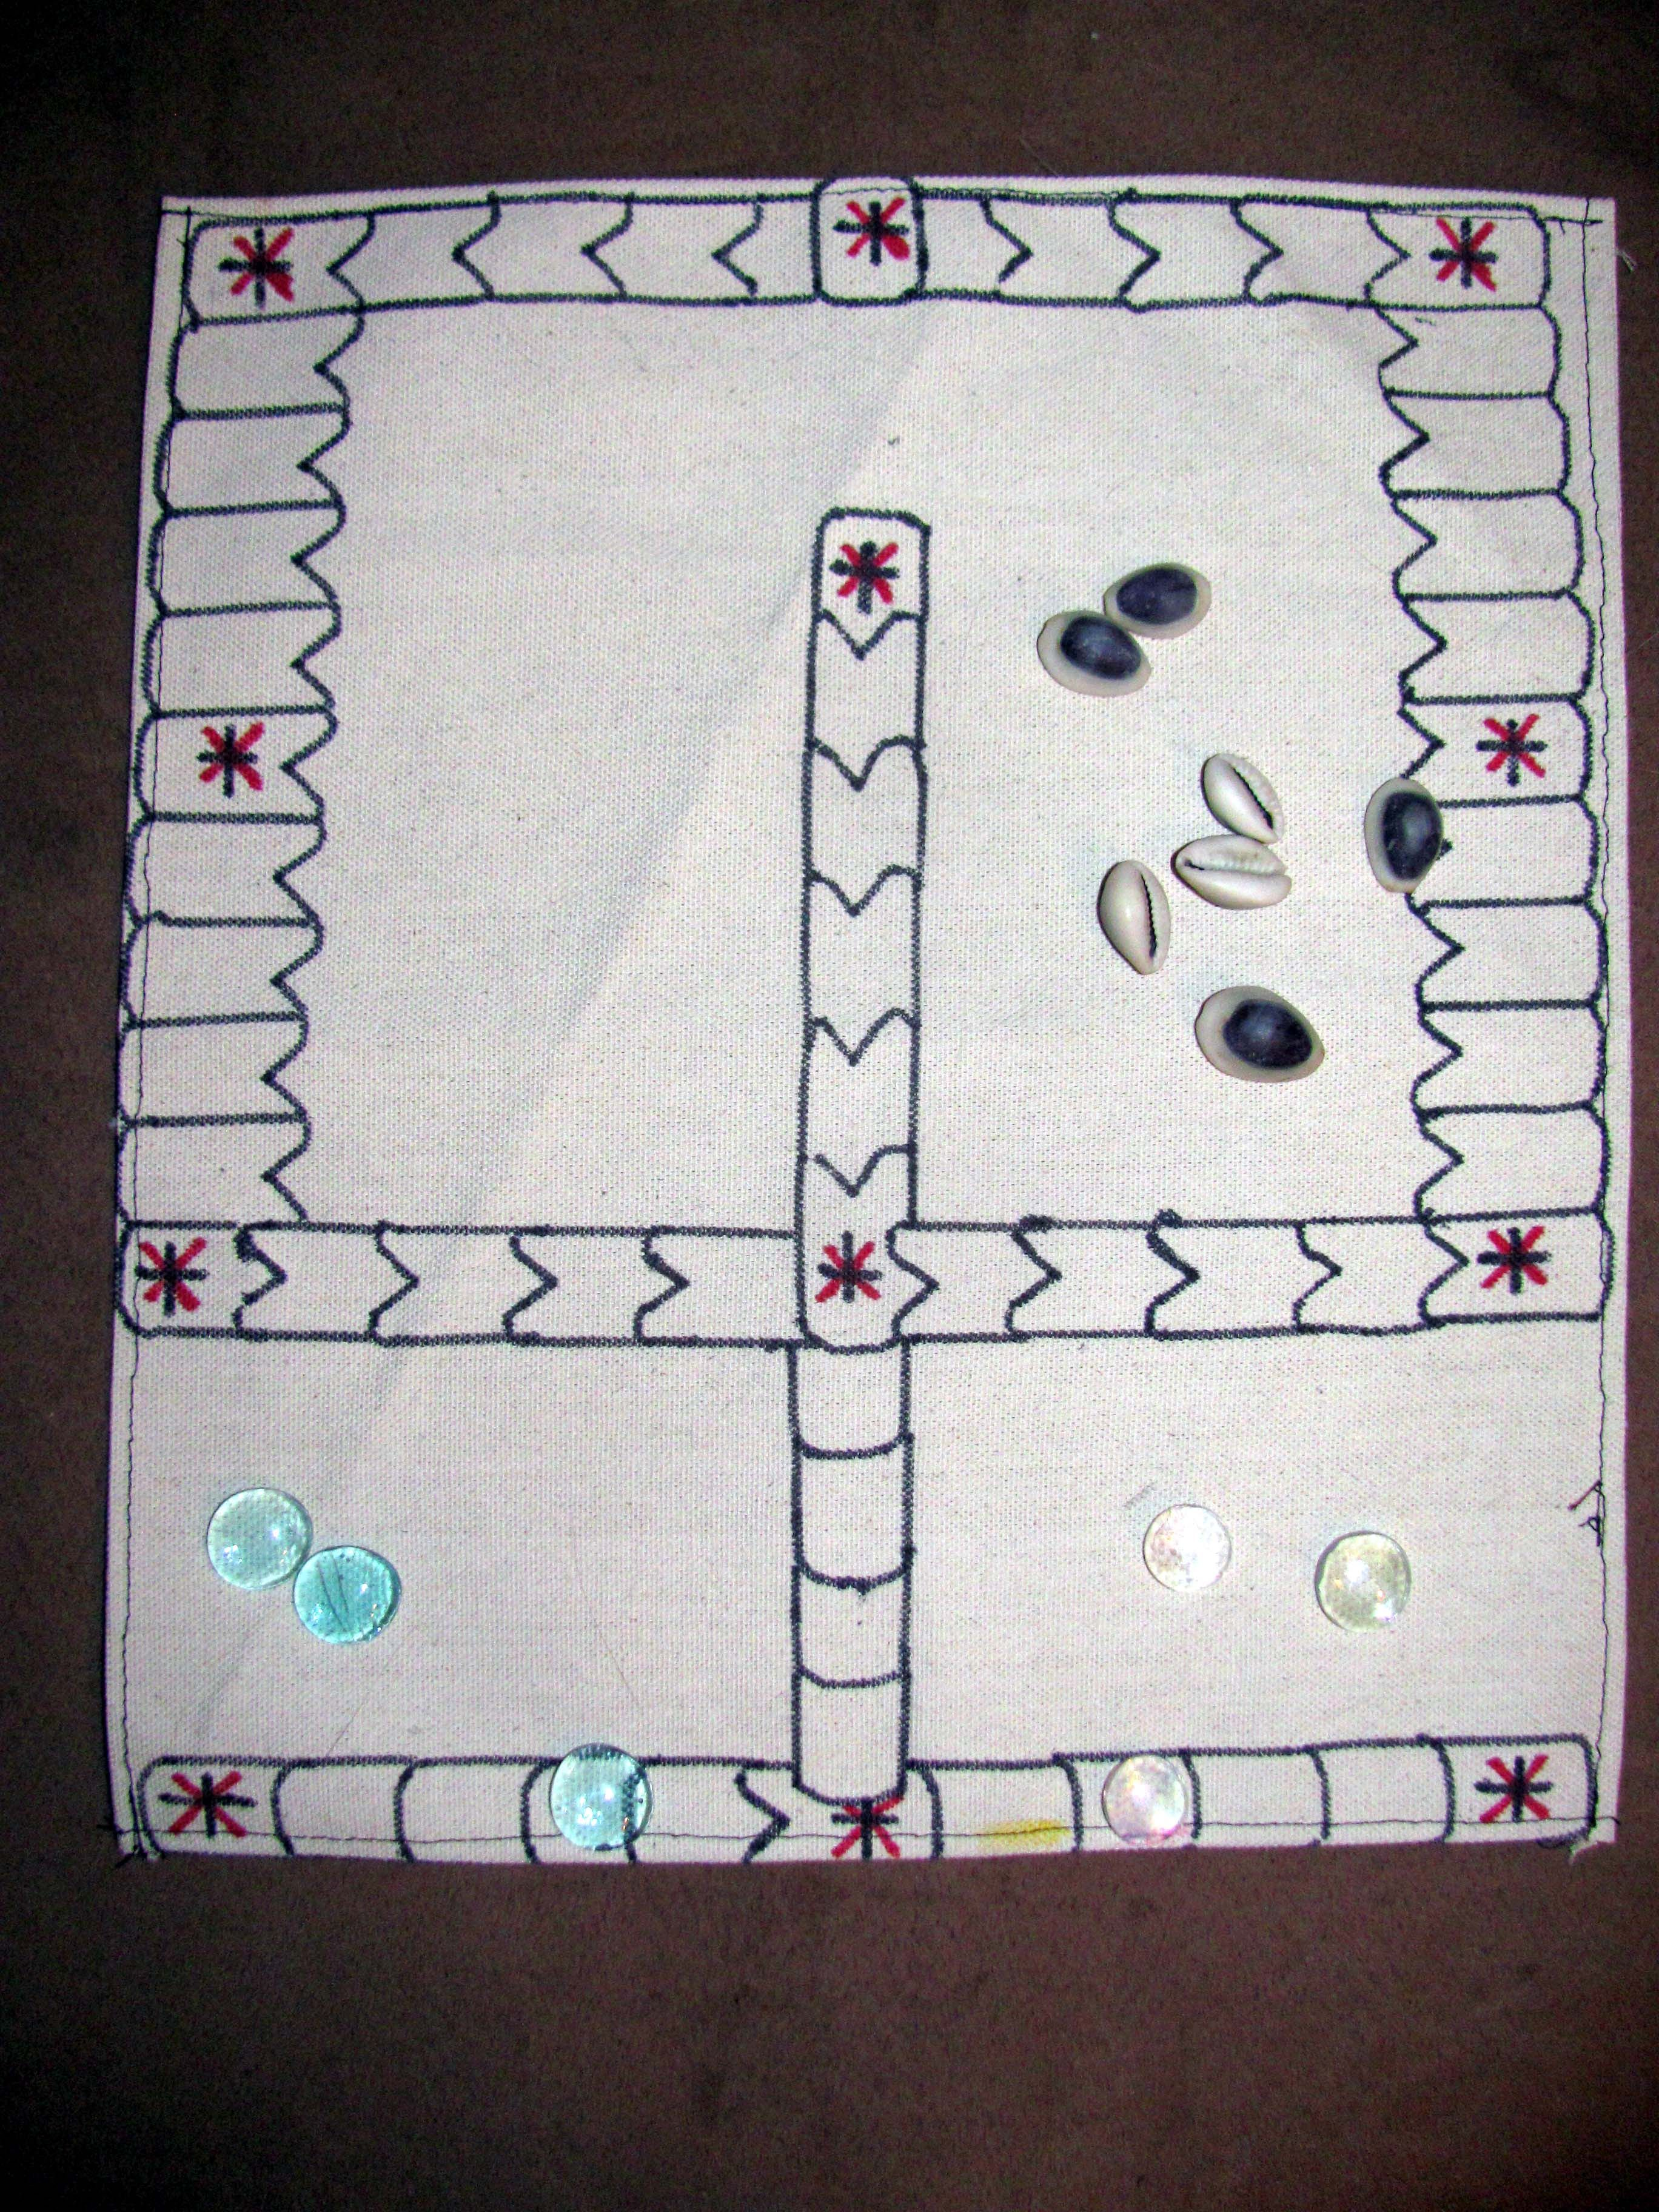 Panchi Traditional Games Family Games Kids Rugs